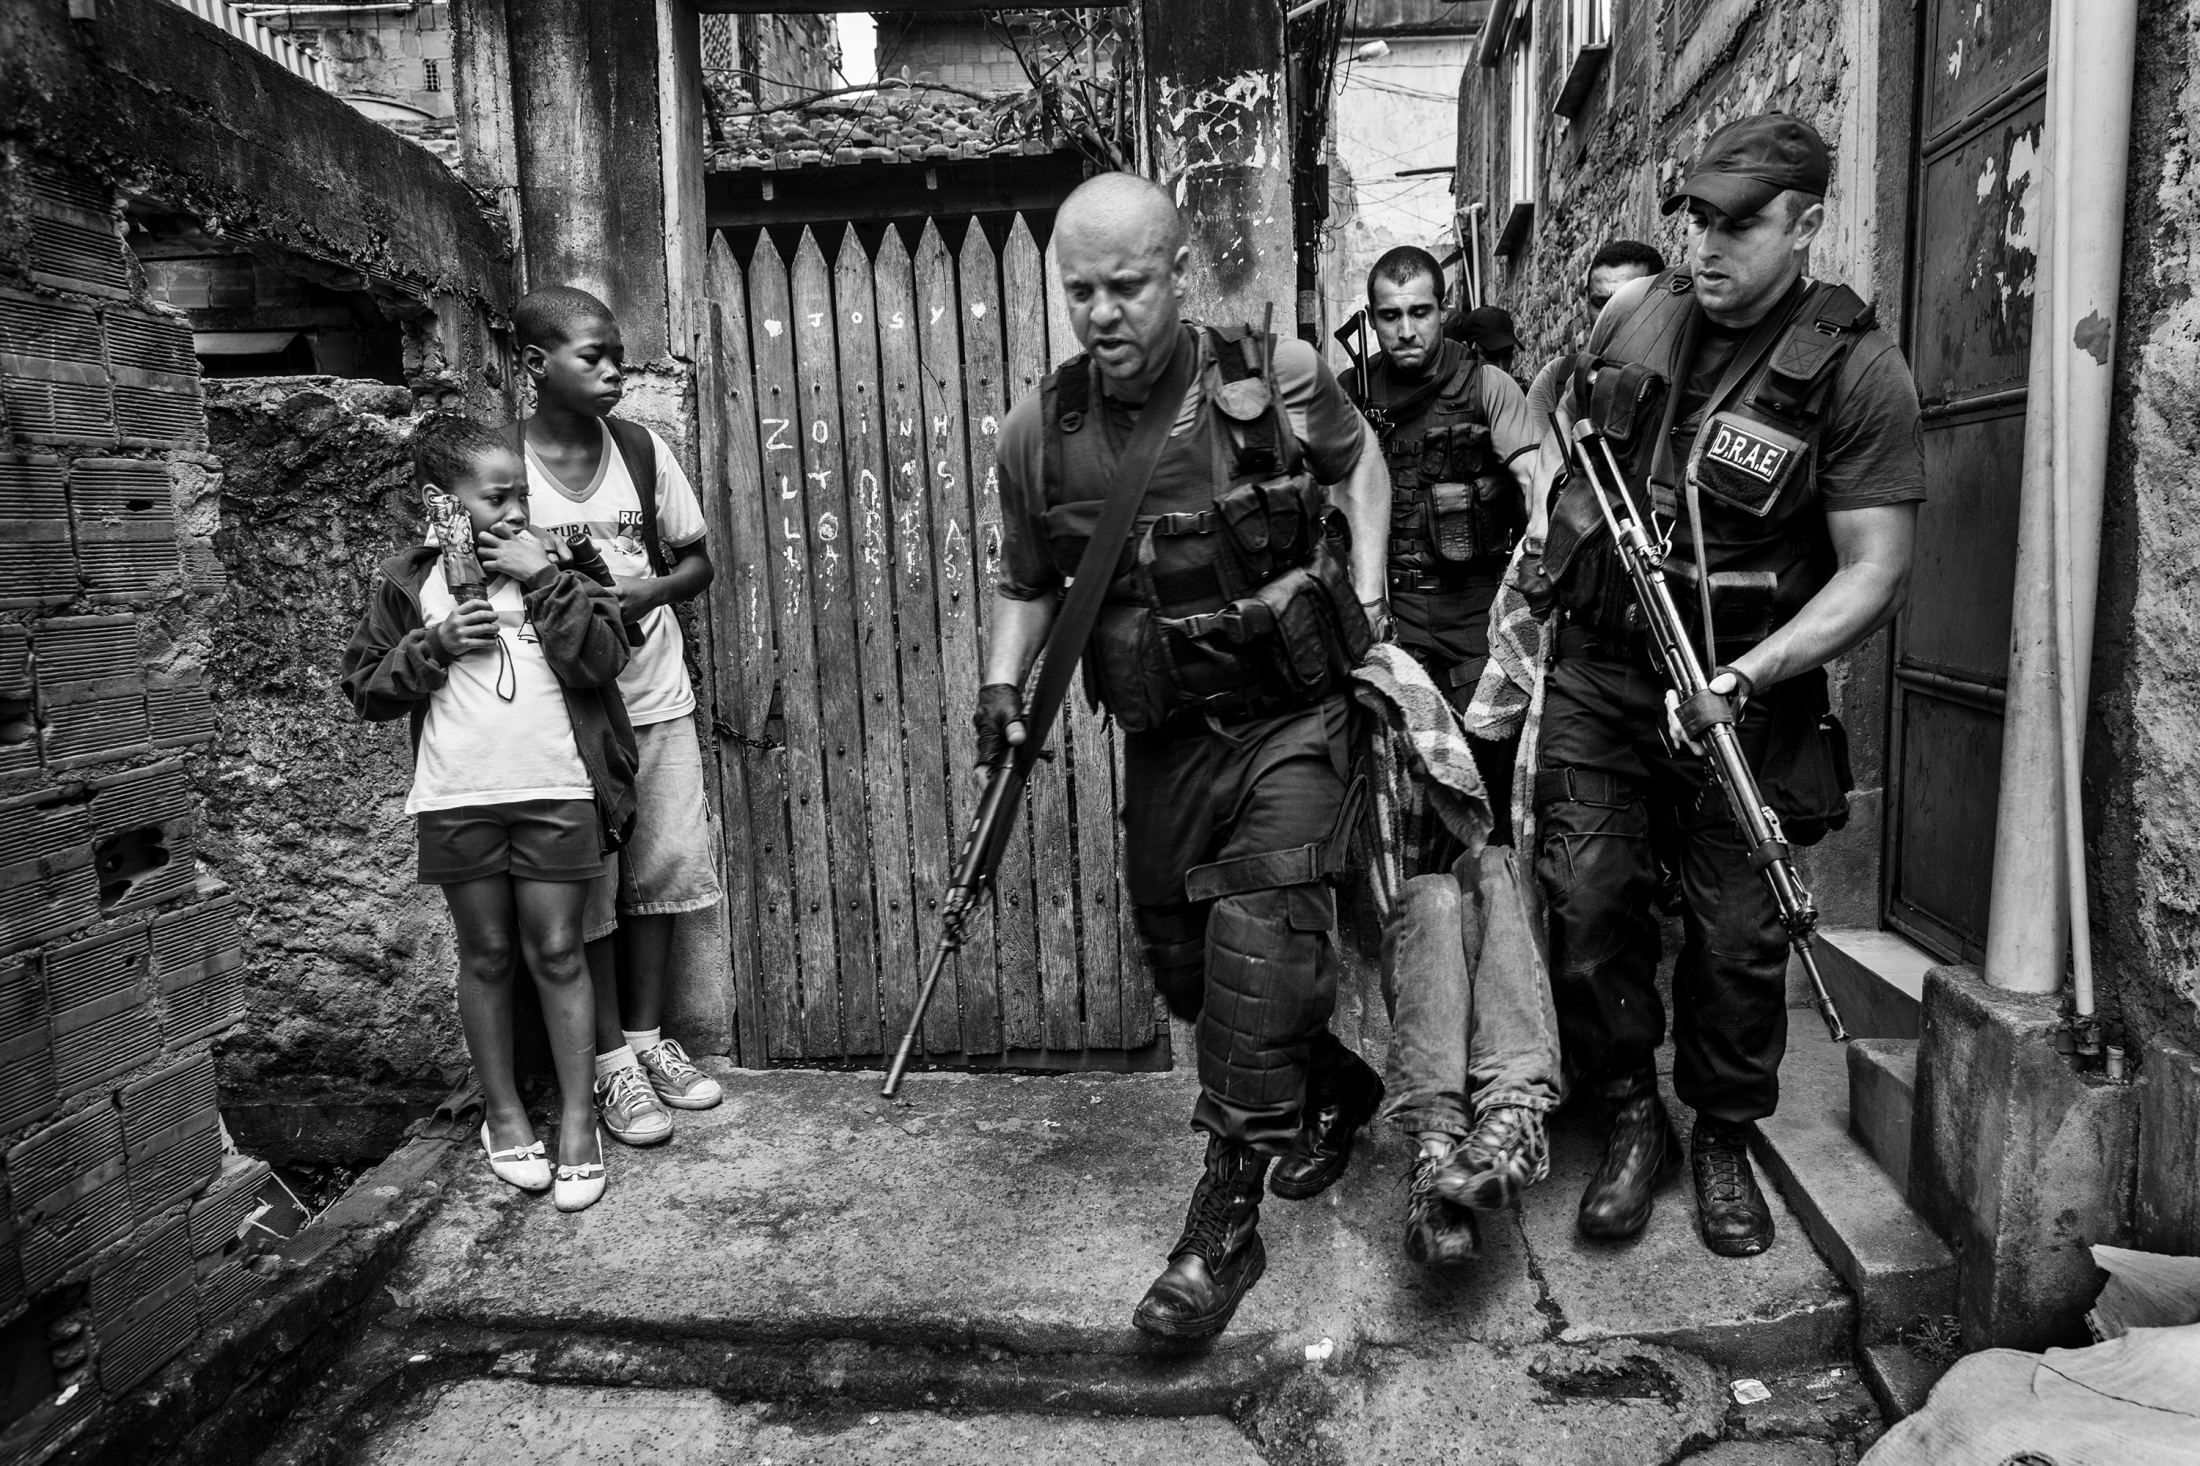 """Policemen from DRAE (Civilian Police division against weapons and explosives in Portuguese) carry the body of a young man, while two children coming back from school look at the scene. This is a case of """"resistance to authority."""" After allegedly being told to stop by the police, the suspect """"resisted"""" and was shot and taken to the hospital. In 2009 alone, the police officially killed 1049 people with this practice. November 2009."""